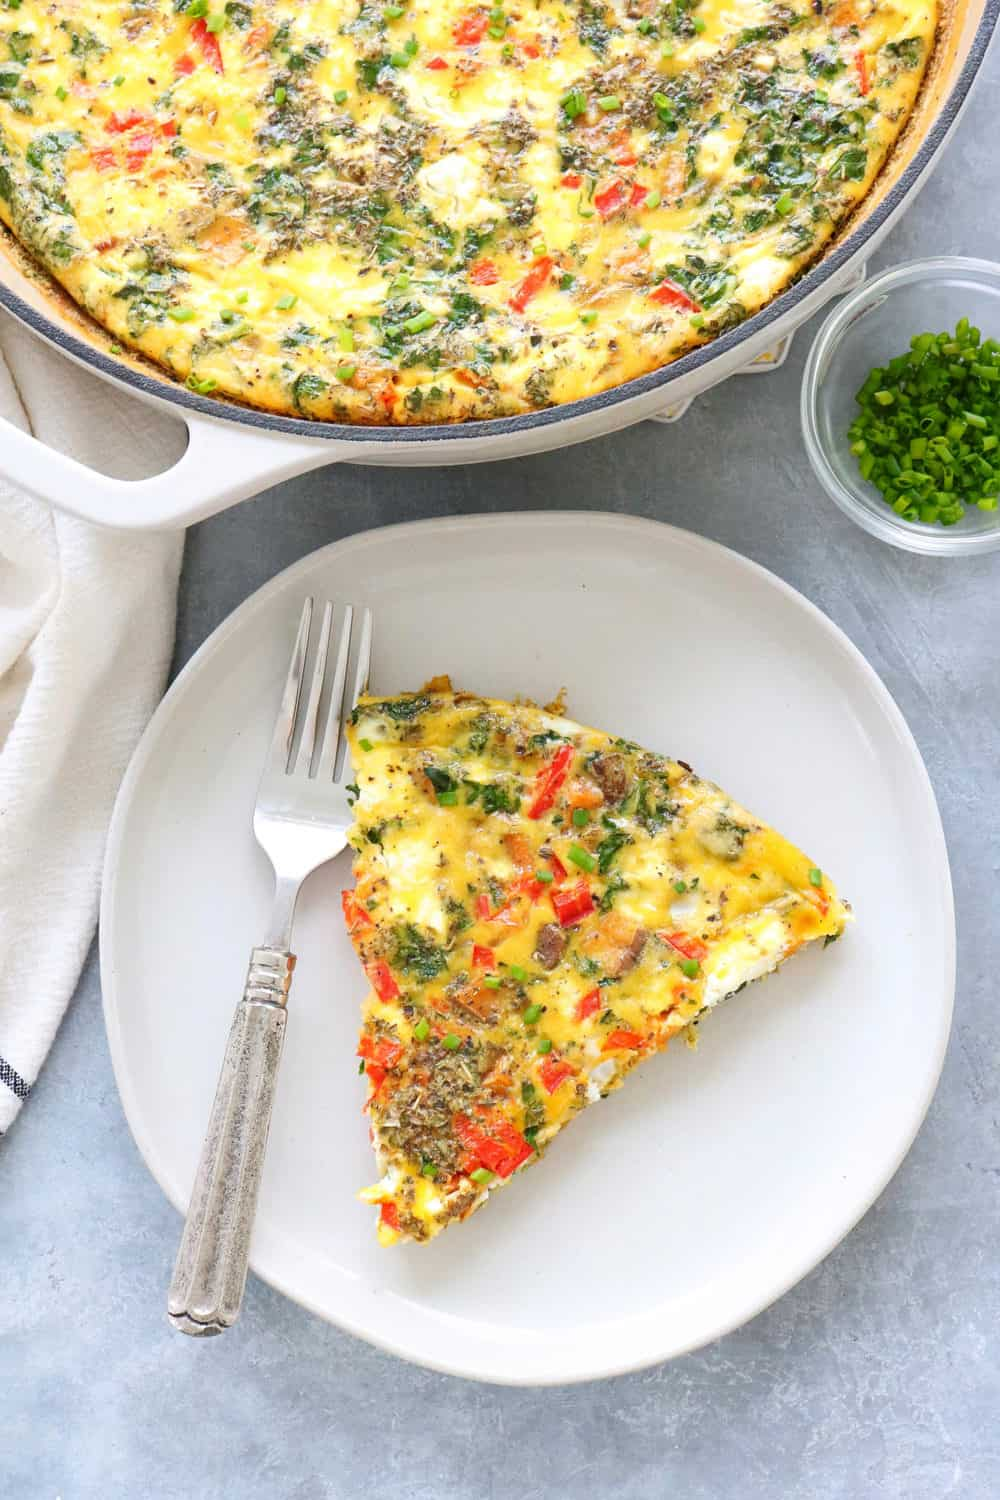 pan with vegetable frittata with a plate with a piece on top of it